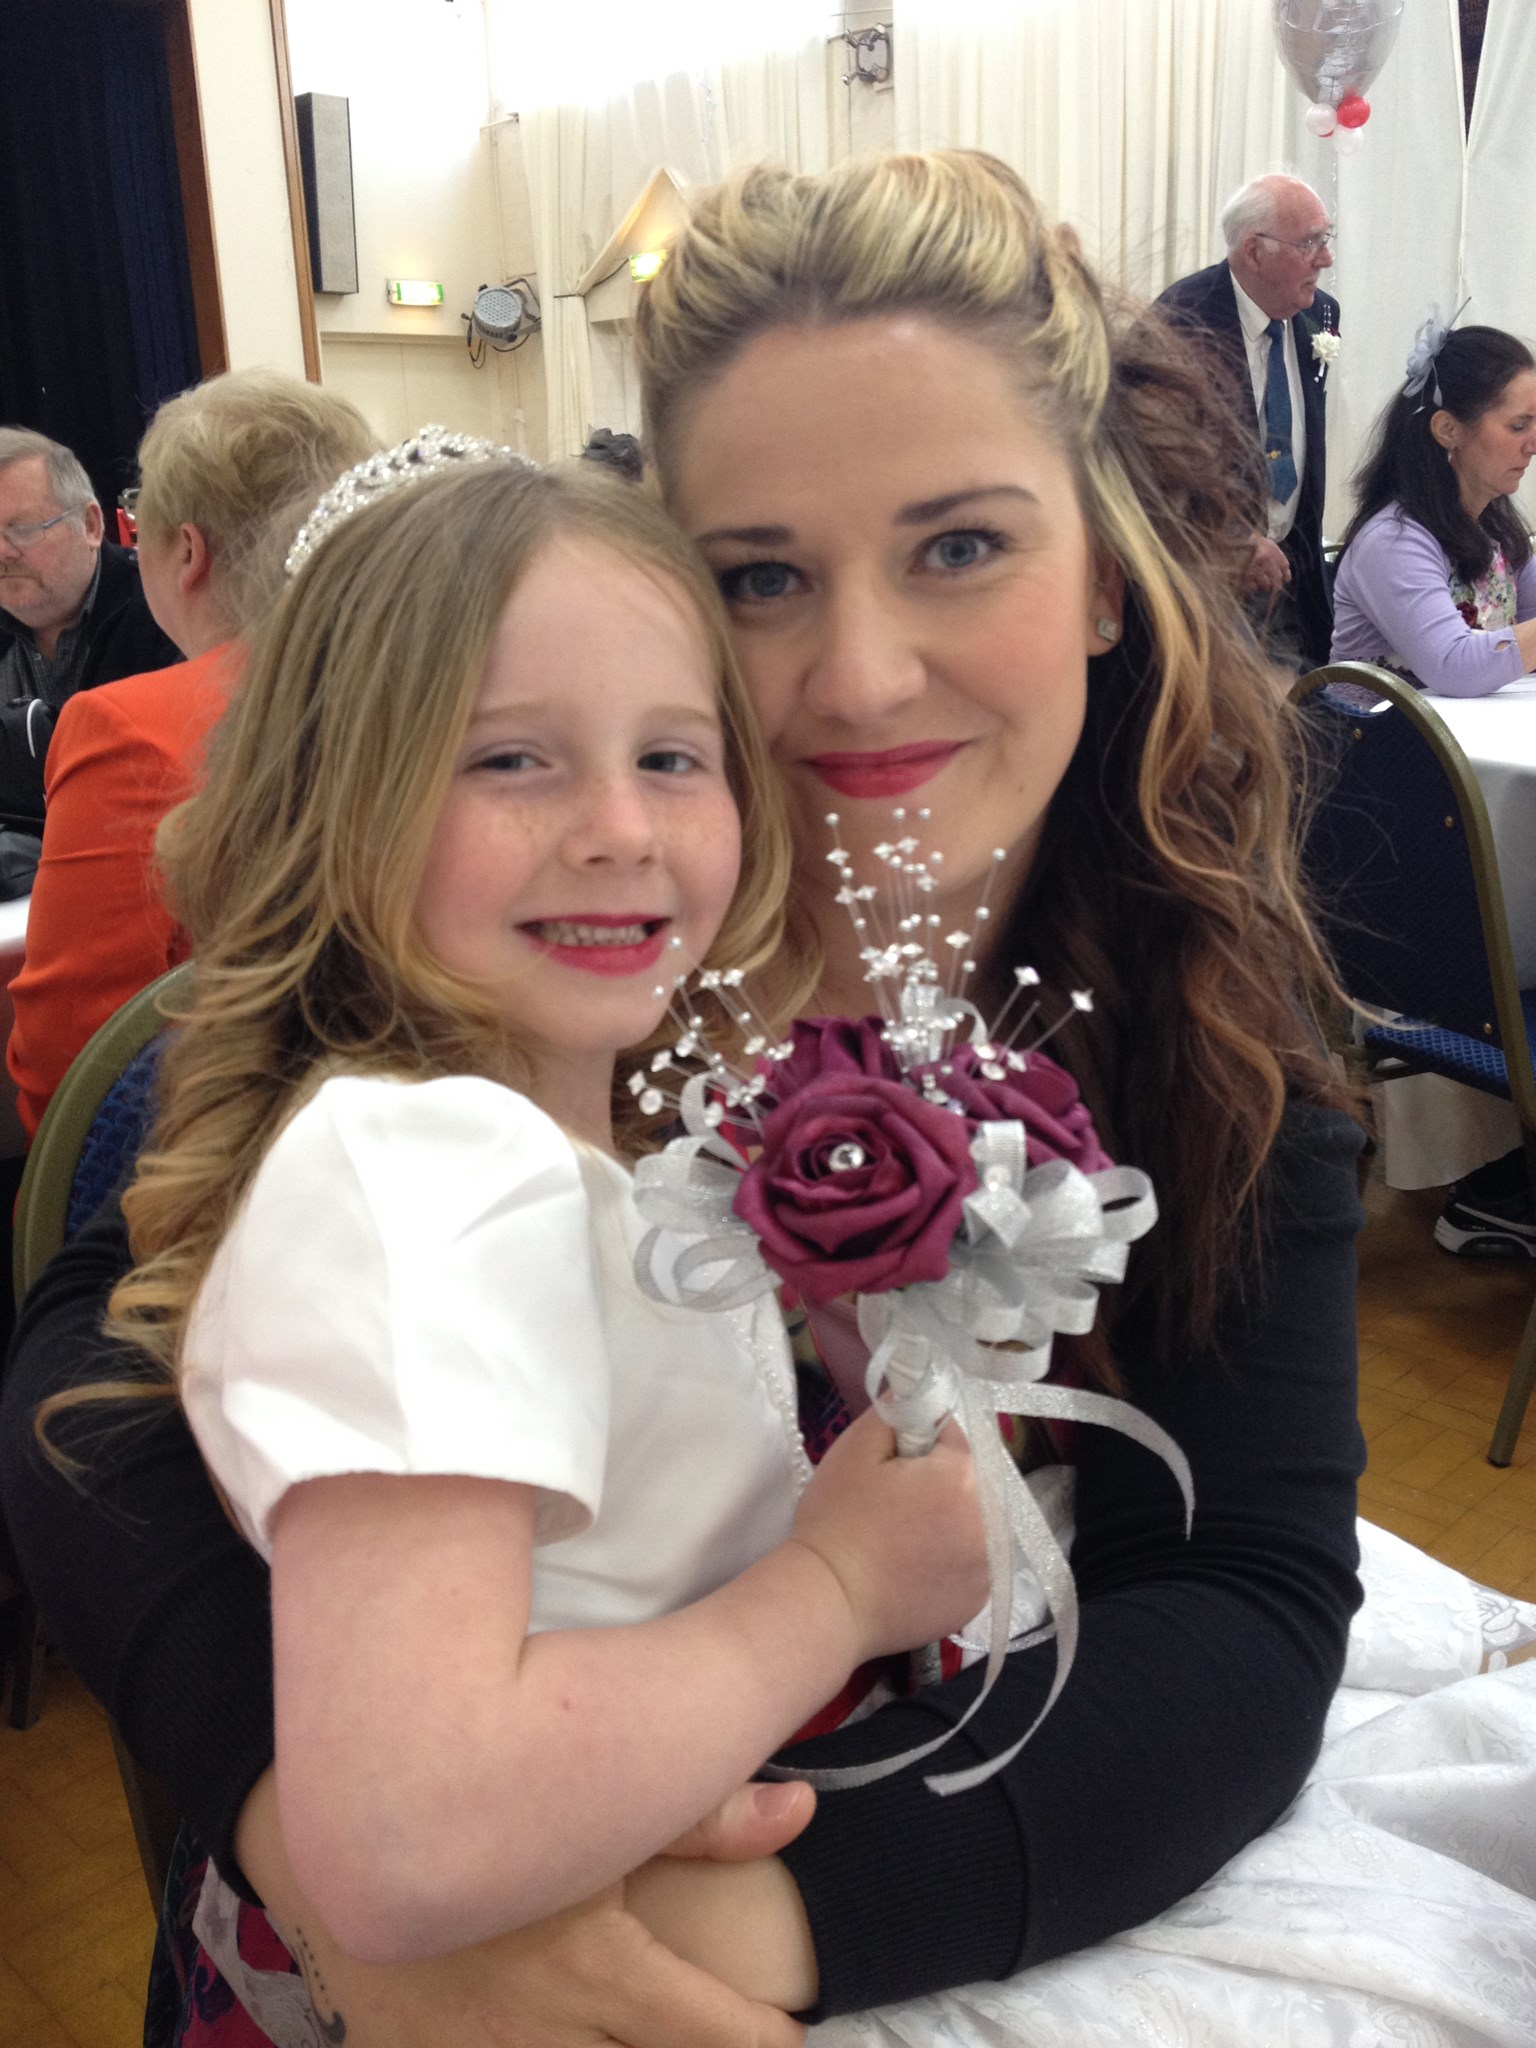 Me and your cousin Jessica as a bridesmaid. A princess just like you xx